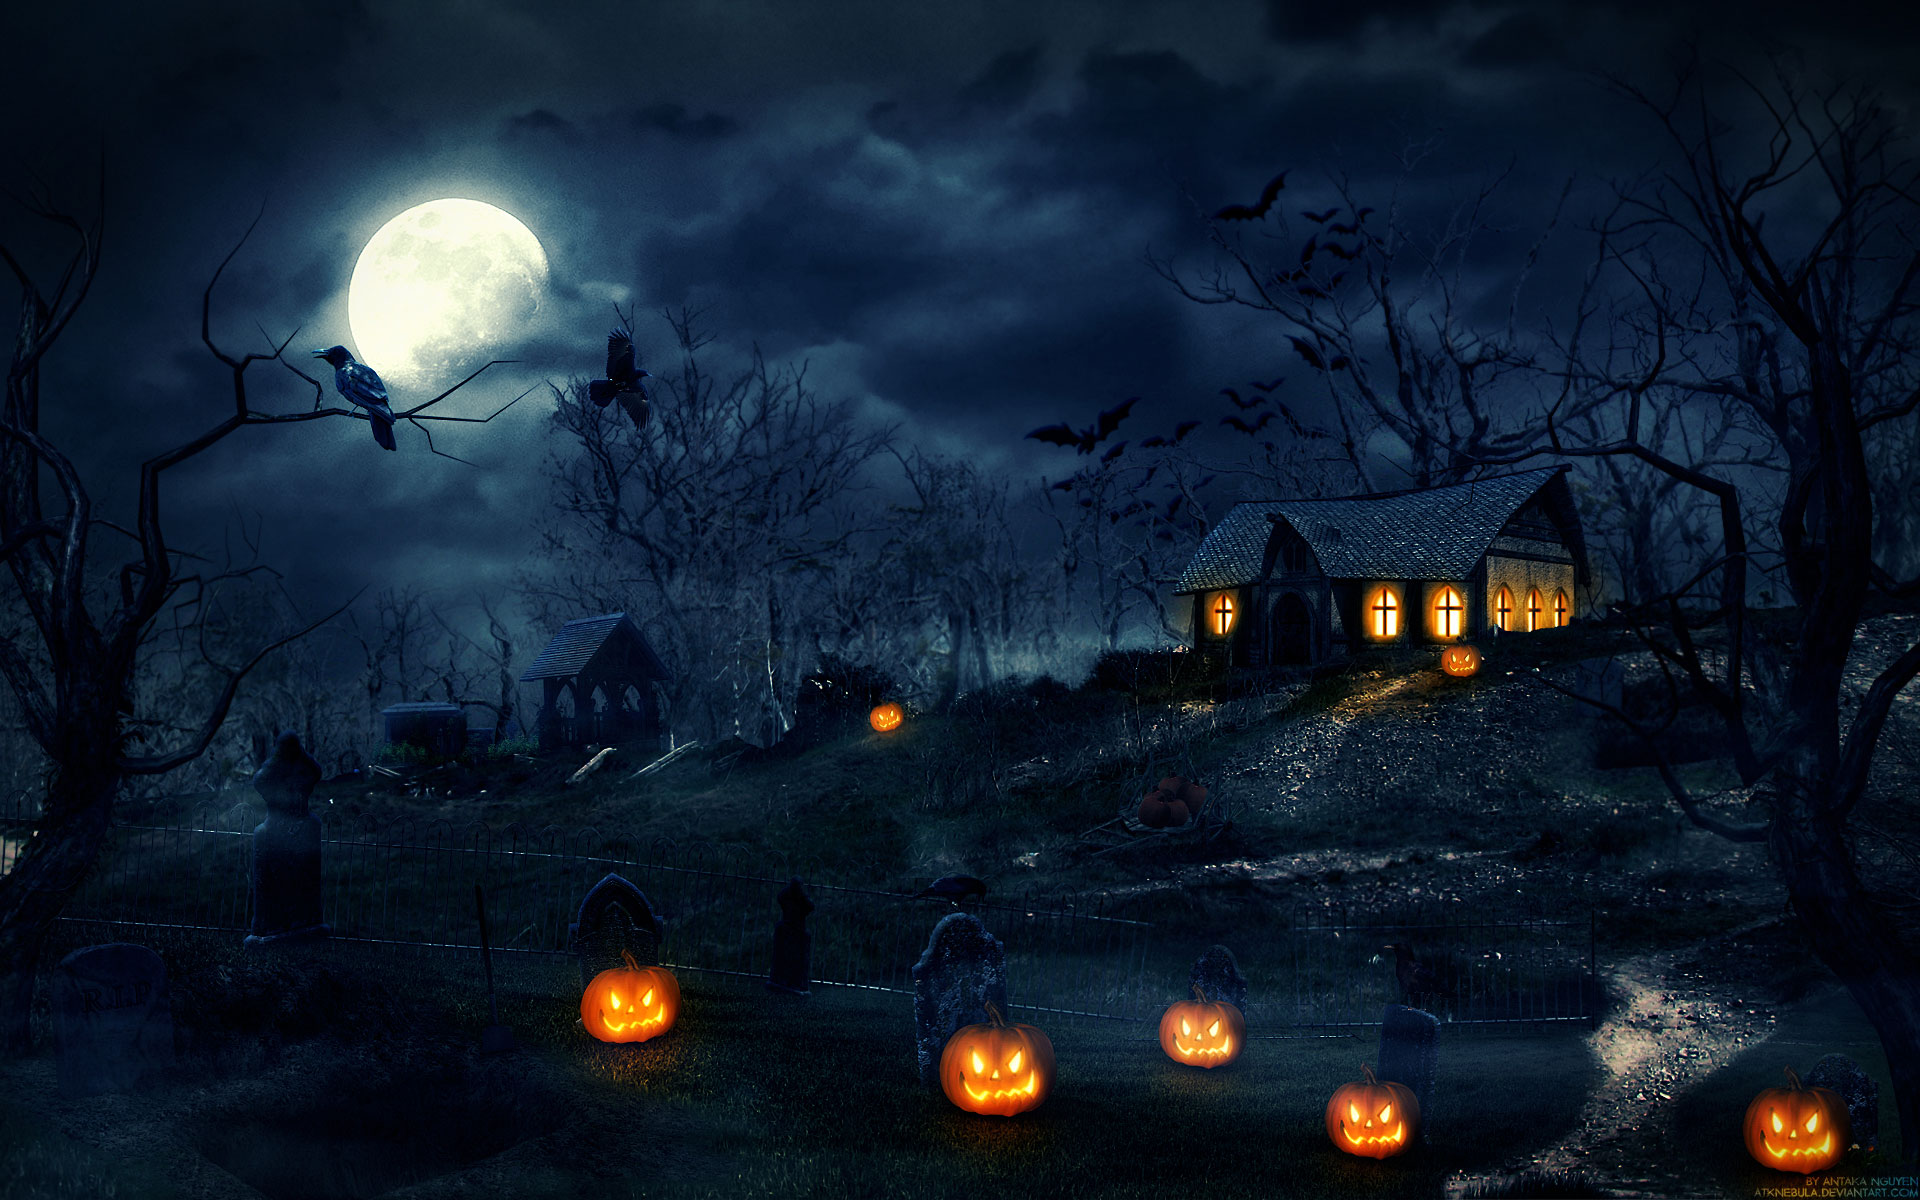 Top 10 HD Halloween 2015 Wallpapers for PC AxeeTech 1920x1200